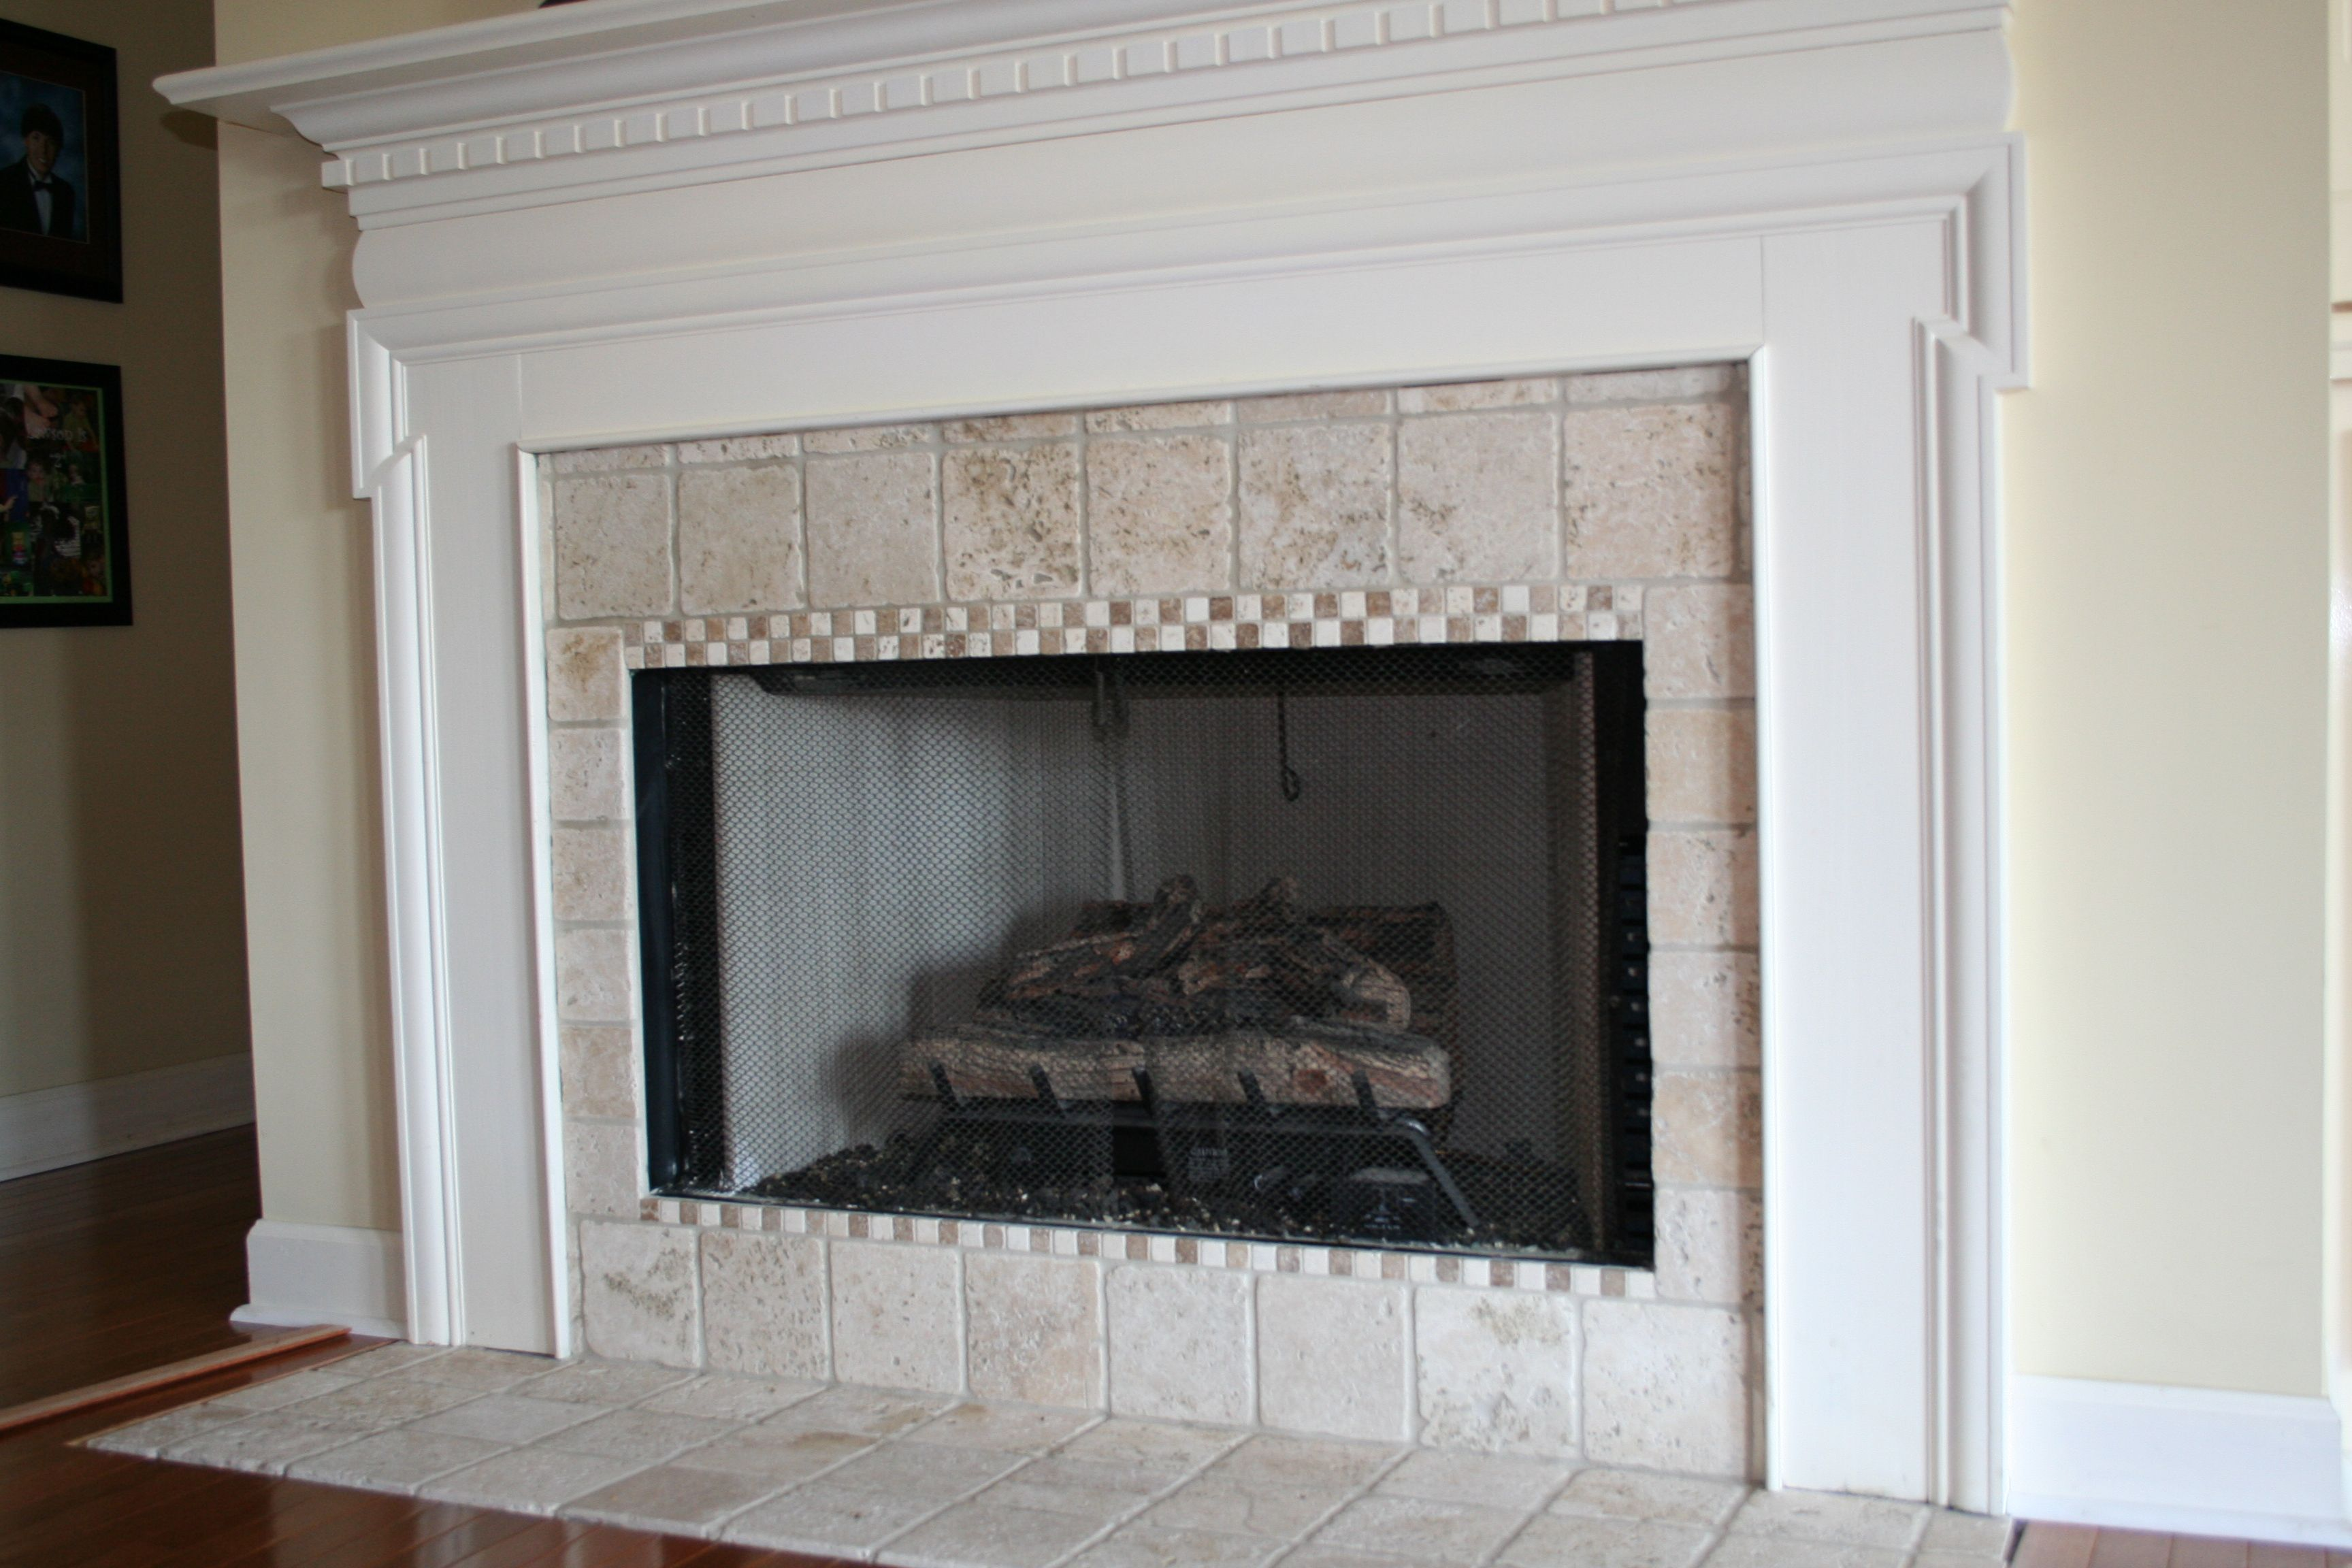 fireplace tile design ideas 1000 images about fireplaces makeovers on pinterest faux stone fireplaces fireplaces and fireplace mantels fireplace - Fireplace Surround Design Ideas